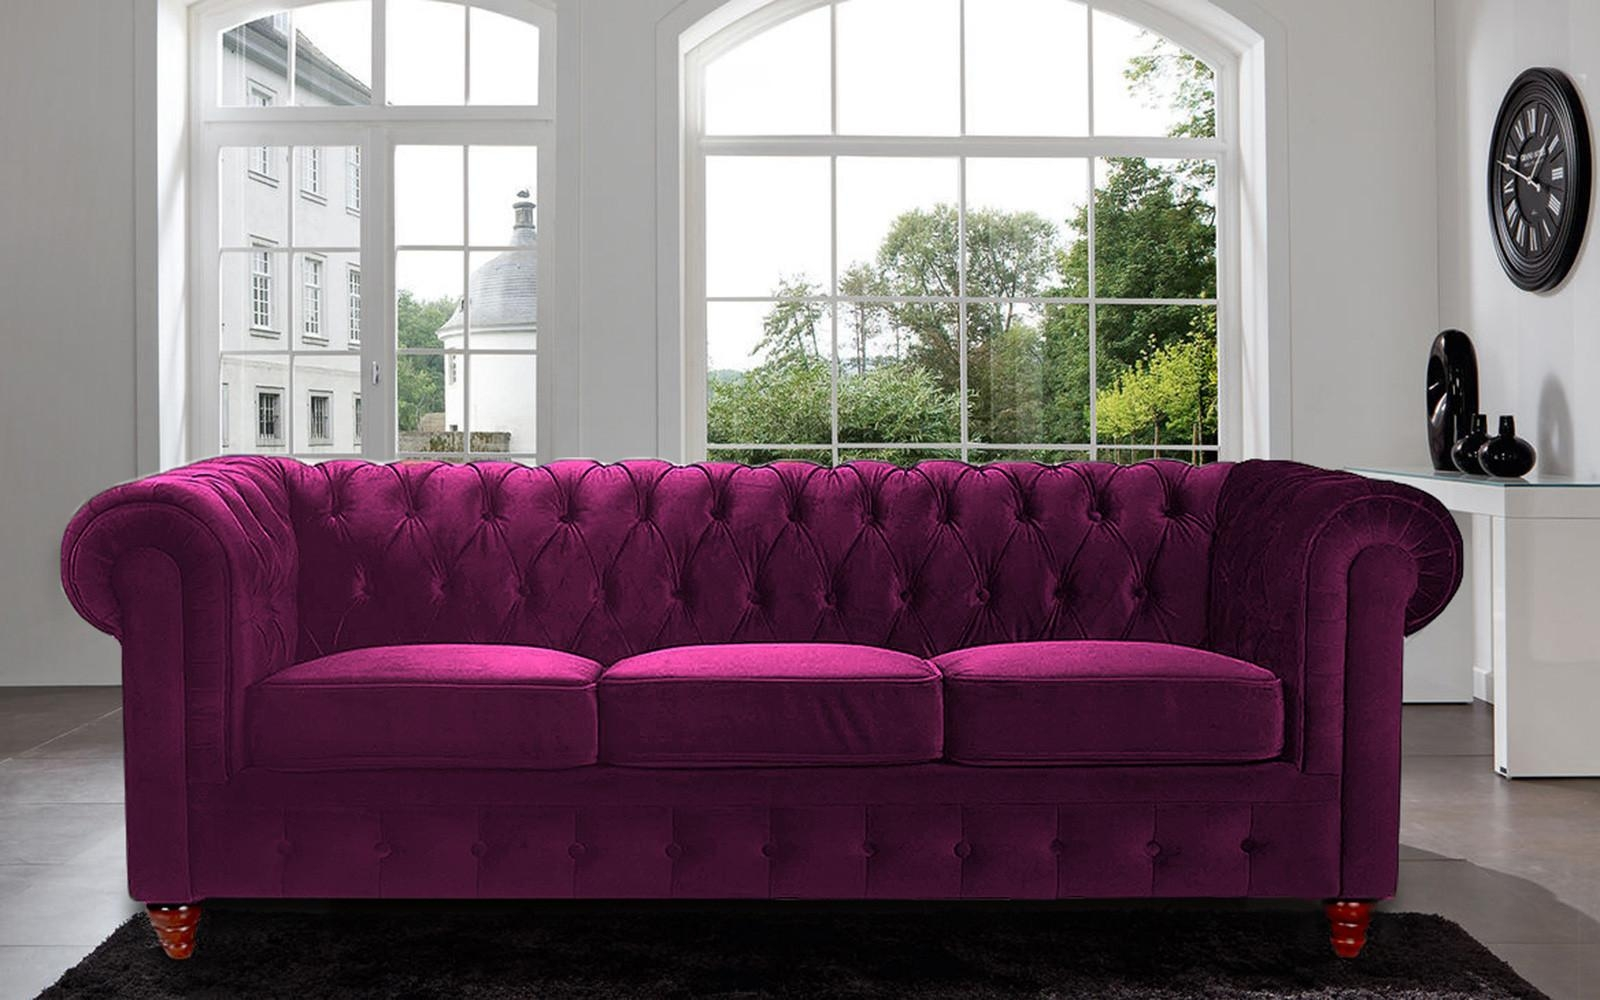 Classic Scroll Arm Tufted Velvet Chesterfield Large Sofa – Walmart Throughout Velvet Purple Sofas (View 8 of 20)